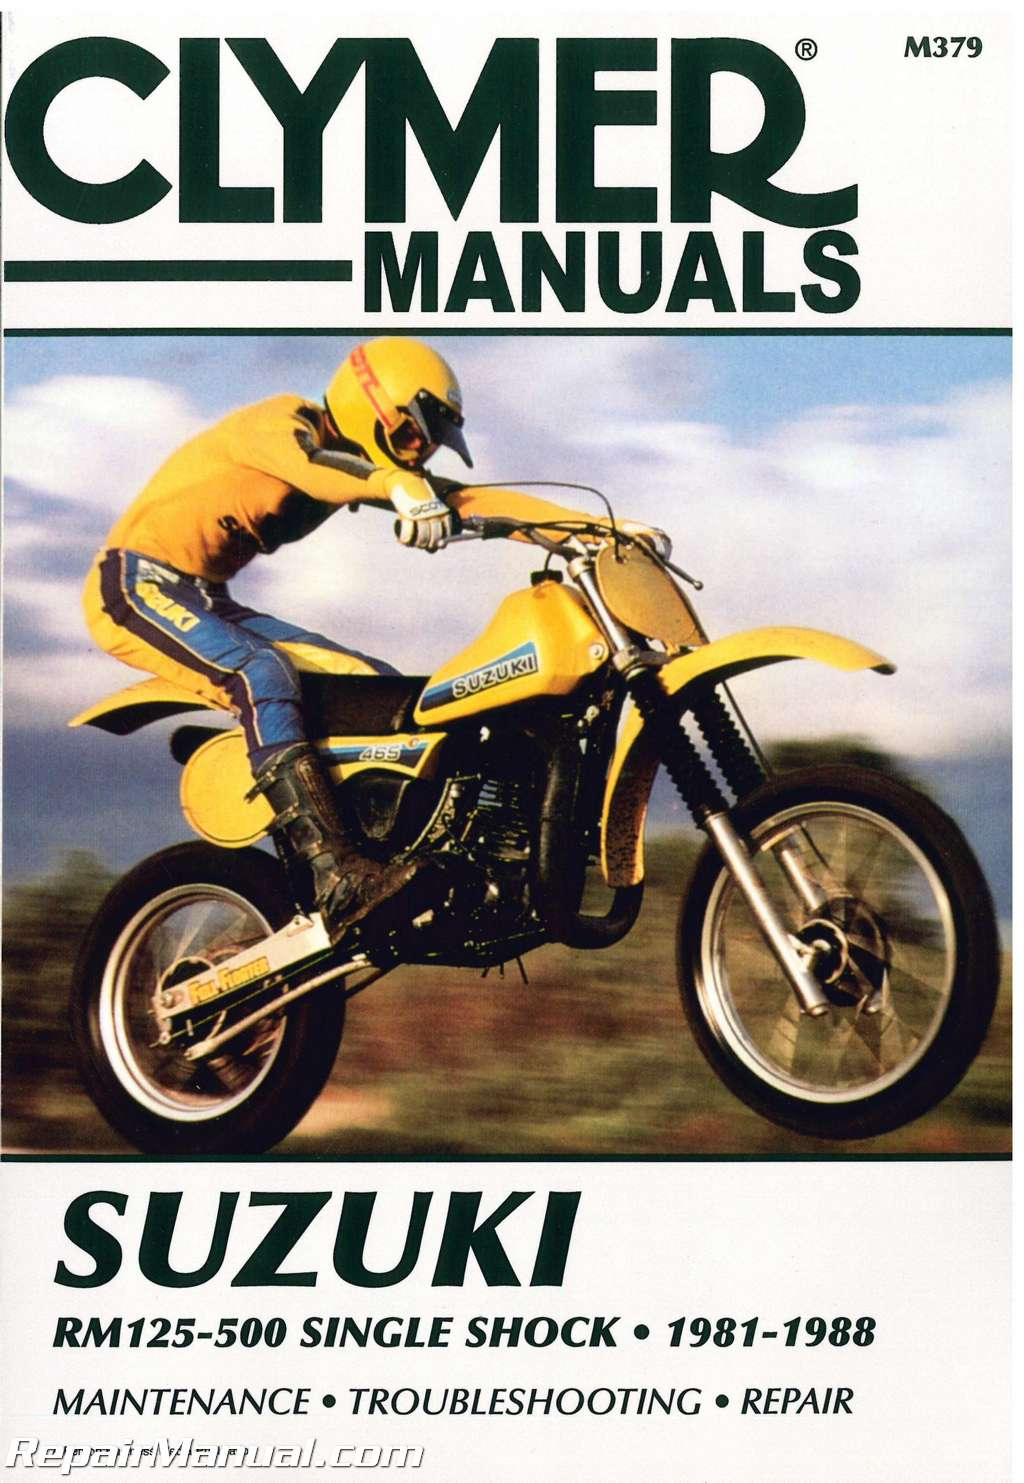 Suzuki Rm250 Wiring Schematics Diagram Kubota Schematic Rm125 500 Single Shock 1981 1988 Motorcycle Repair Manual